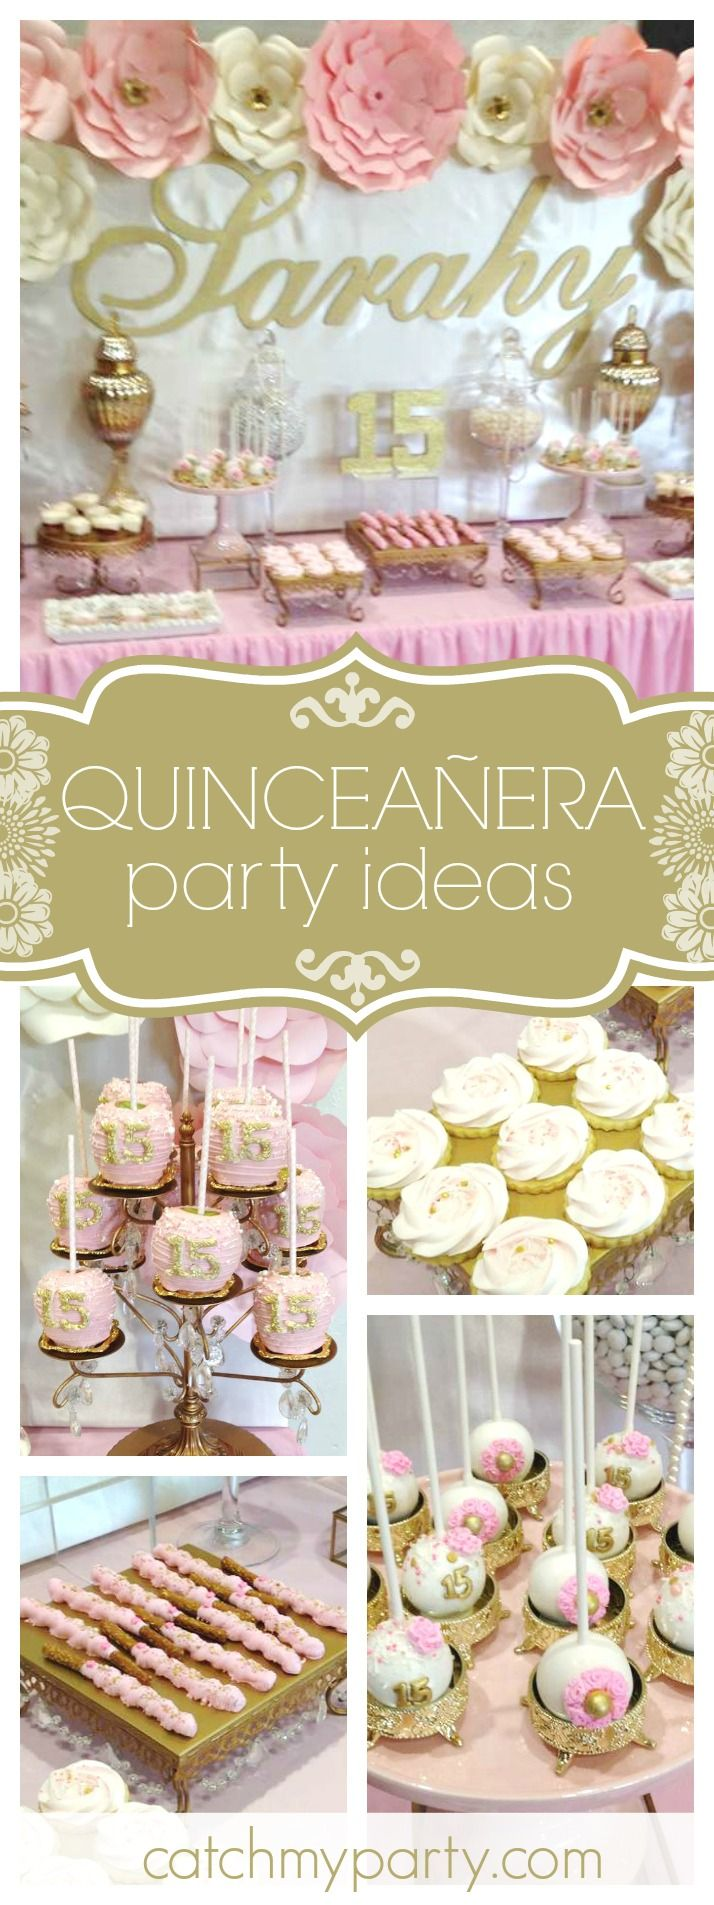 25 best ideas about quinceanera ideas on pinterest for 15th birthday party decoration ideas